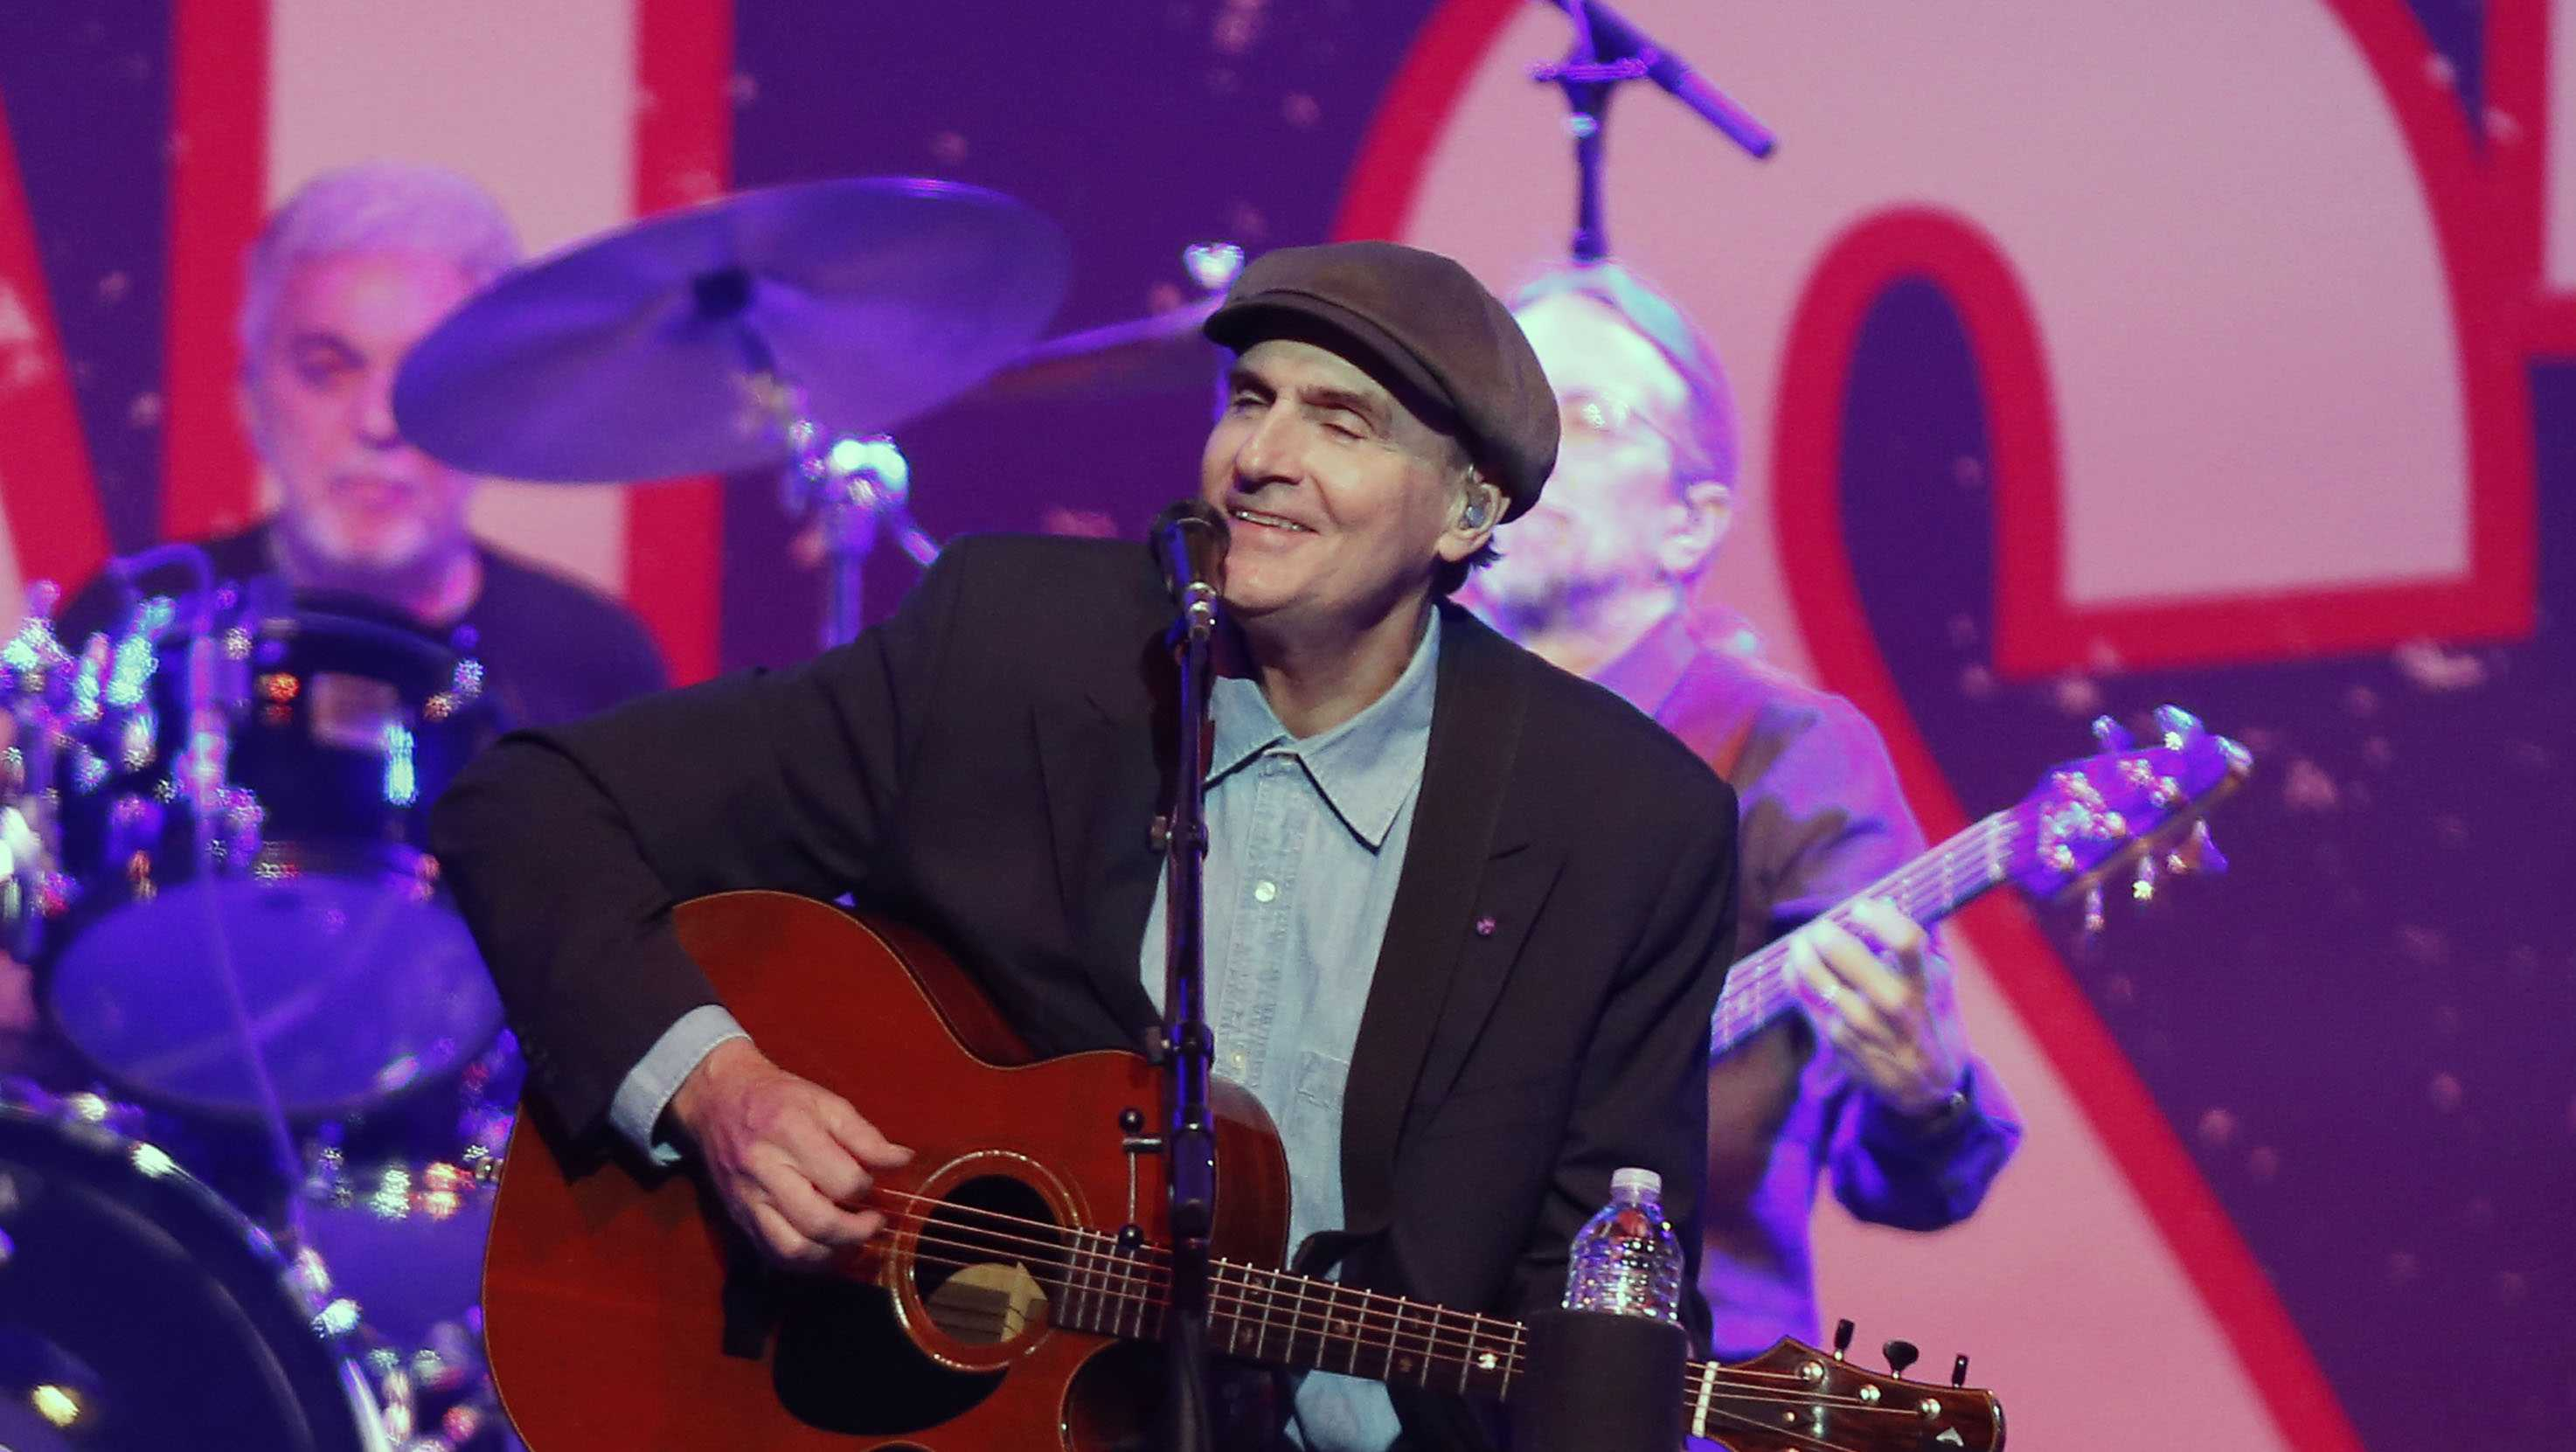 Folk rock icon James Taylor was born in Massachusetts before his family moved to North Carolina when he was 3 years old. The Rock & Roll Hall of Fame inductee gave a special performance at the memorial service for slain MIT officer Sean Collier in April 2013.